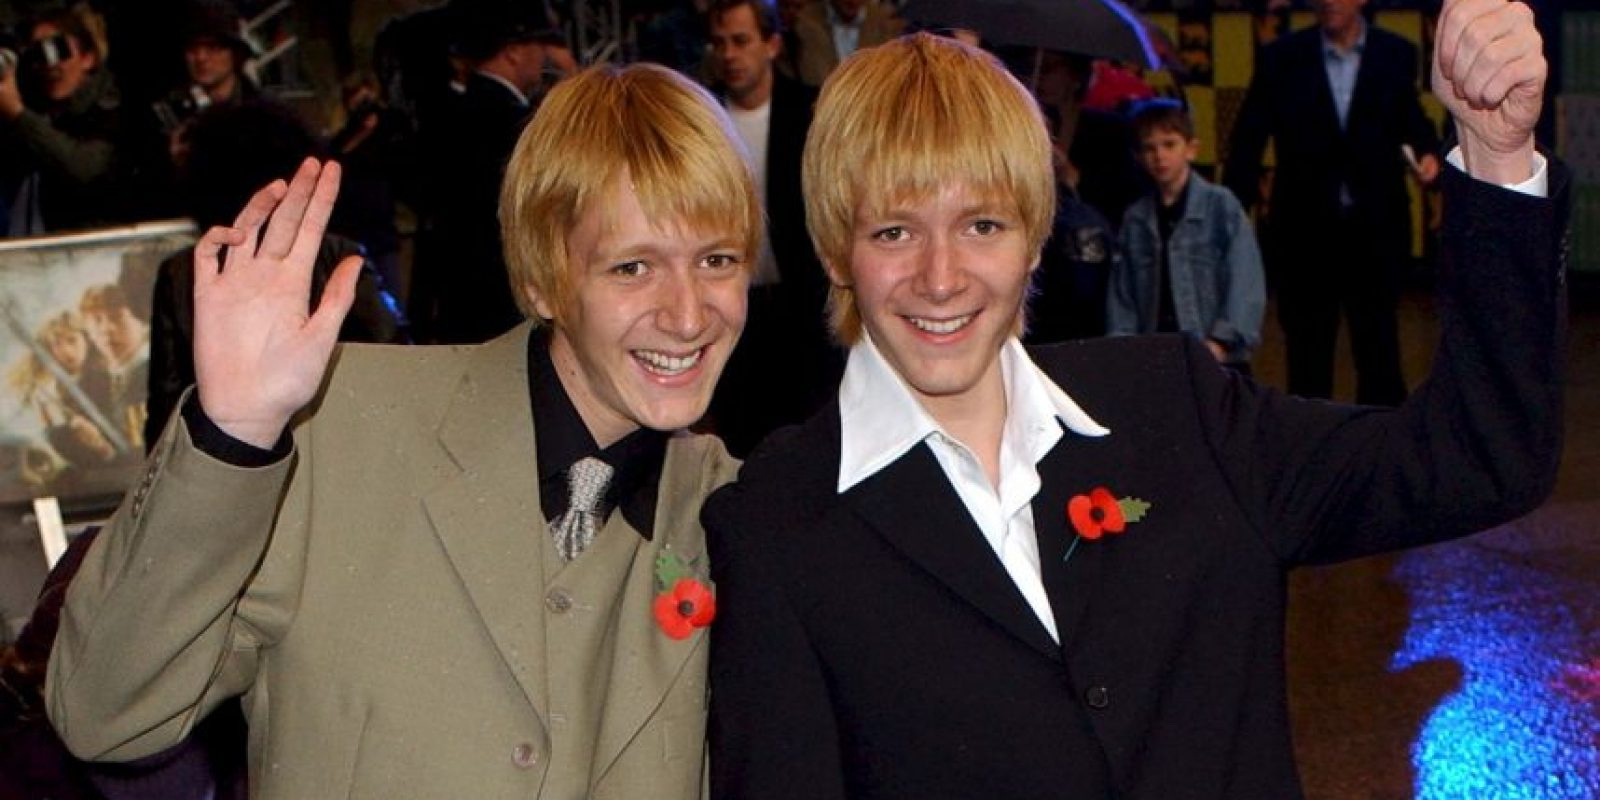 Oliver Phelps y James Phelps Foto:Getty Images